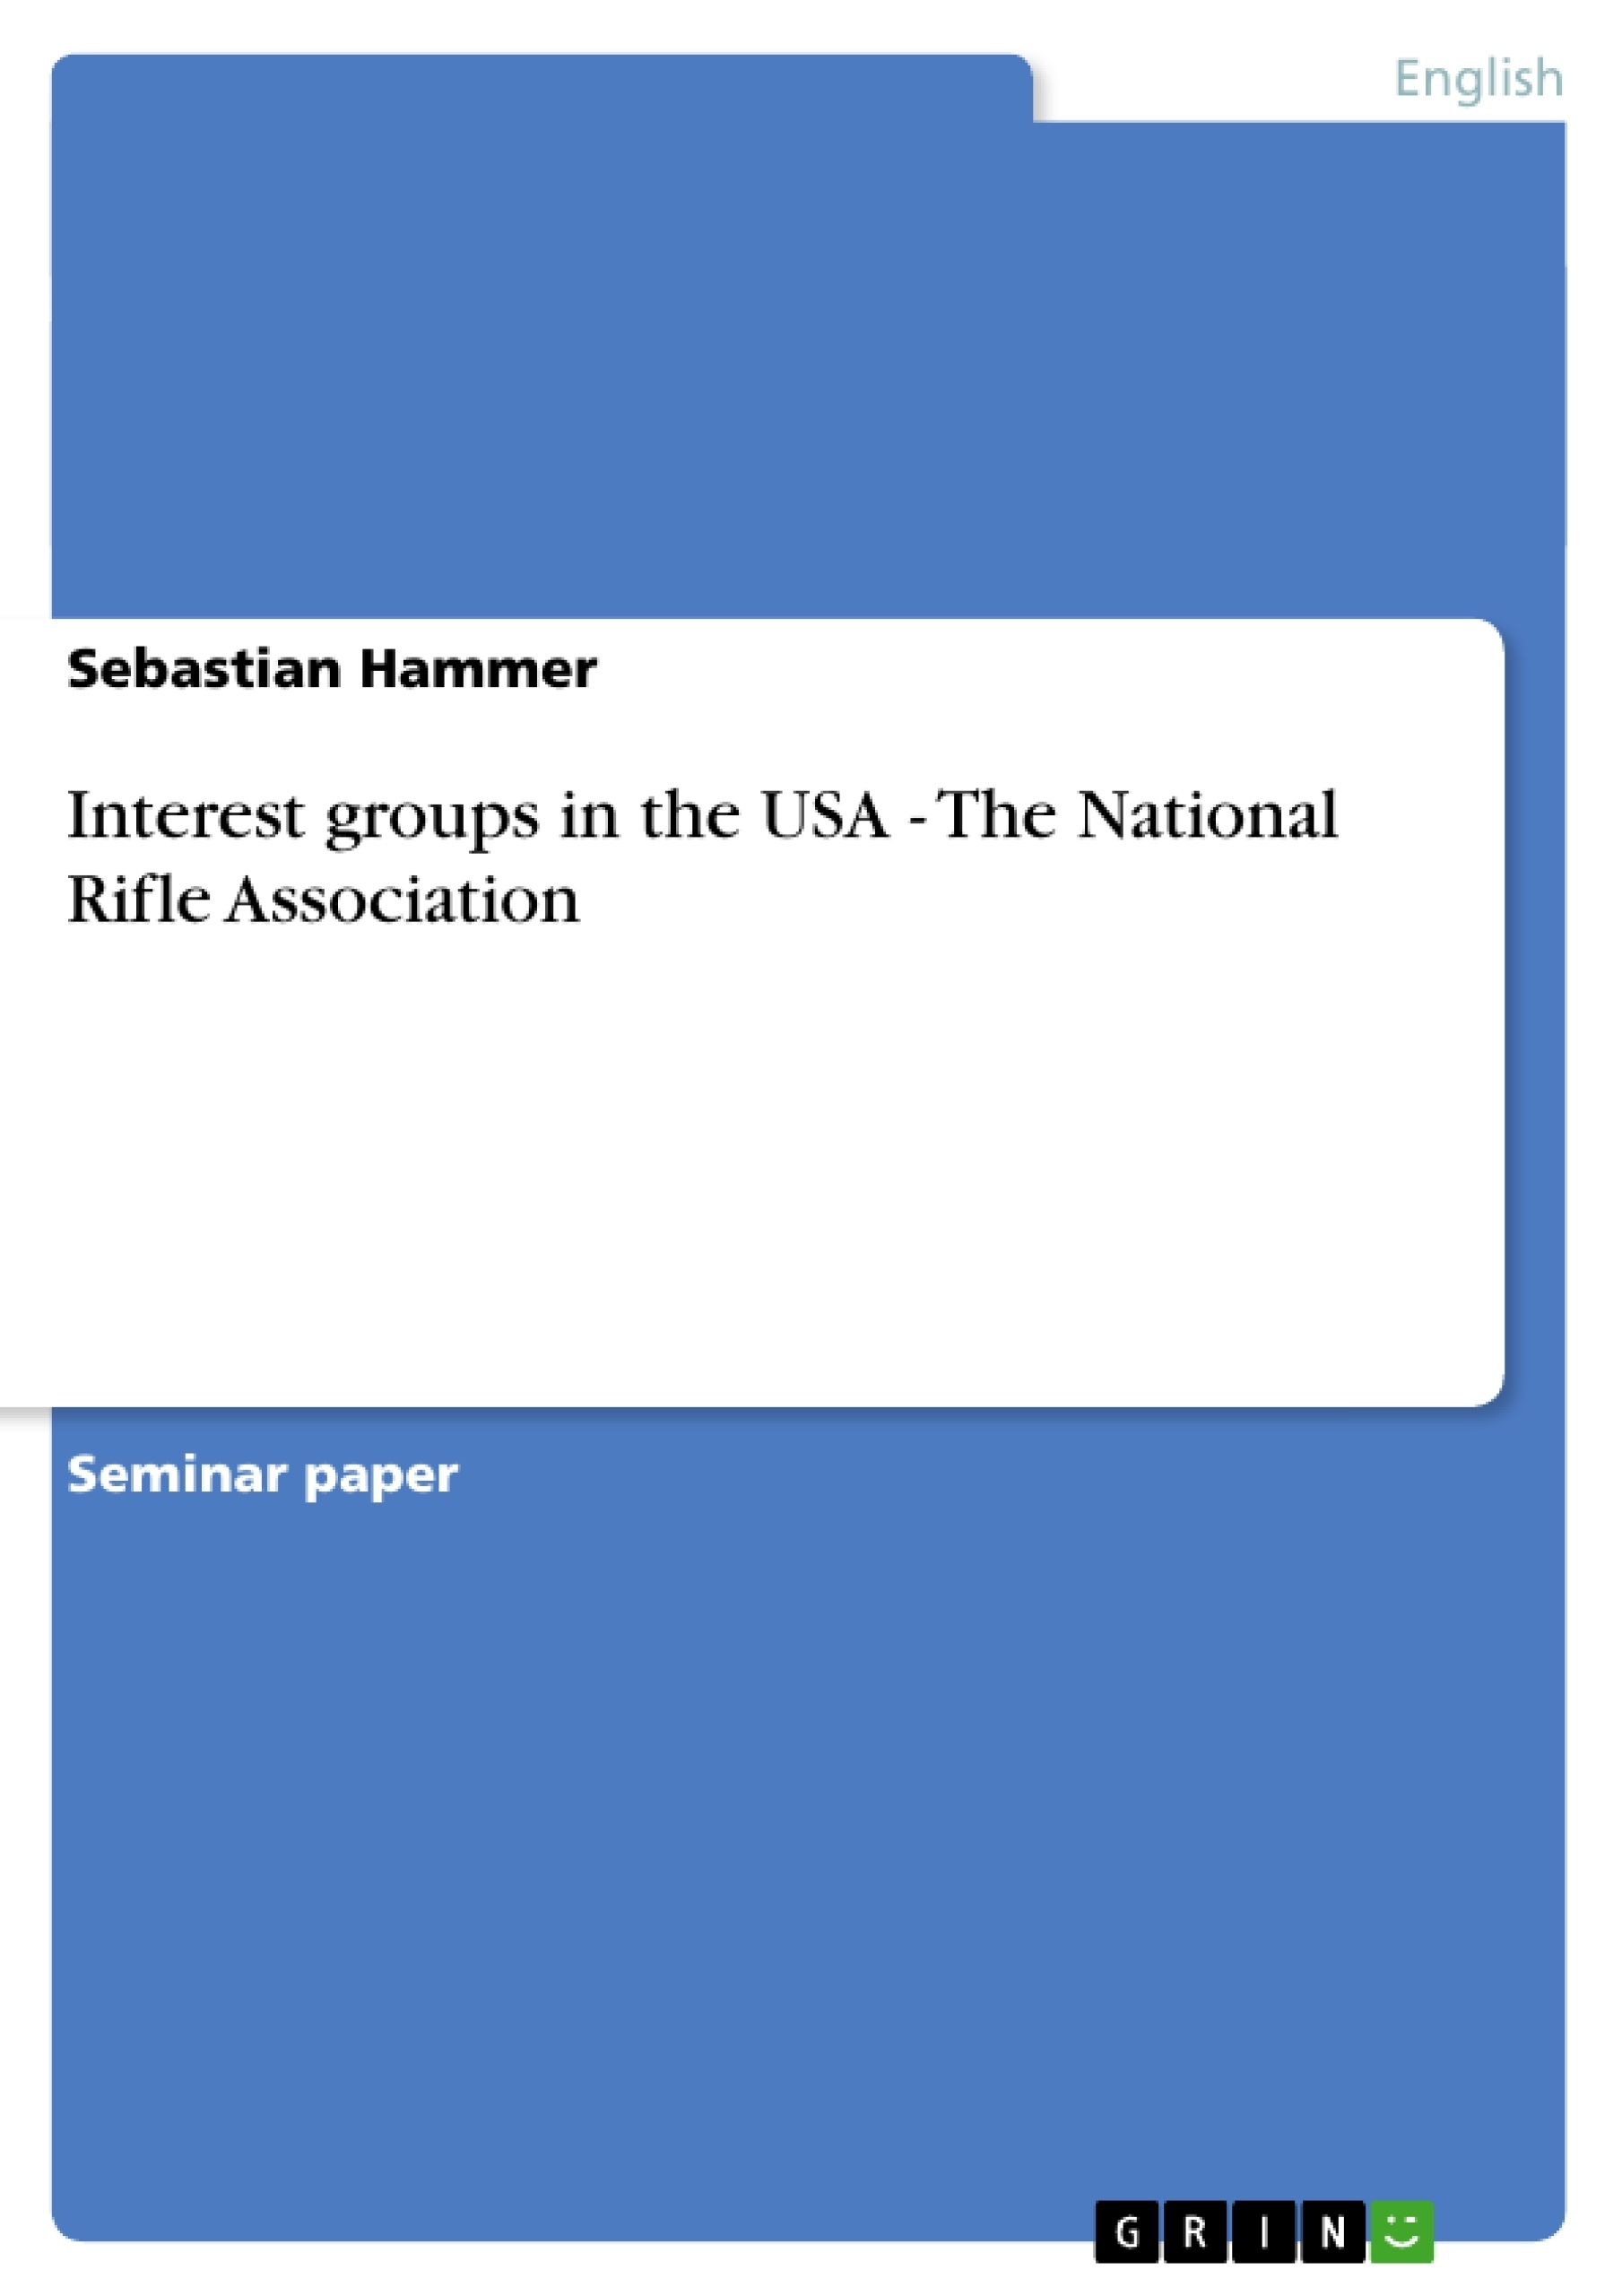 Title: Interest groups in the USA - The National Rifle Association